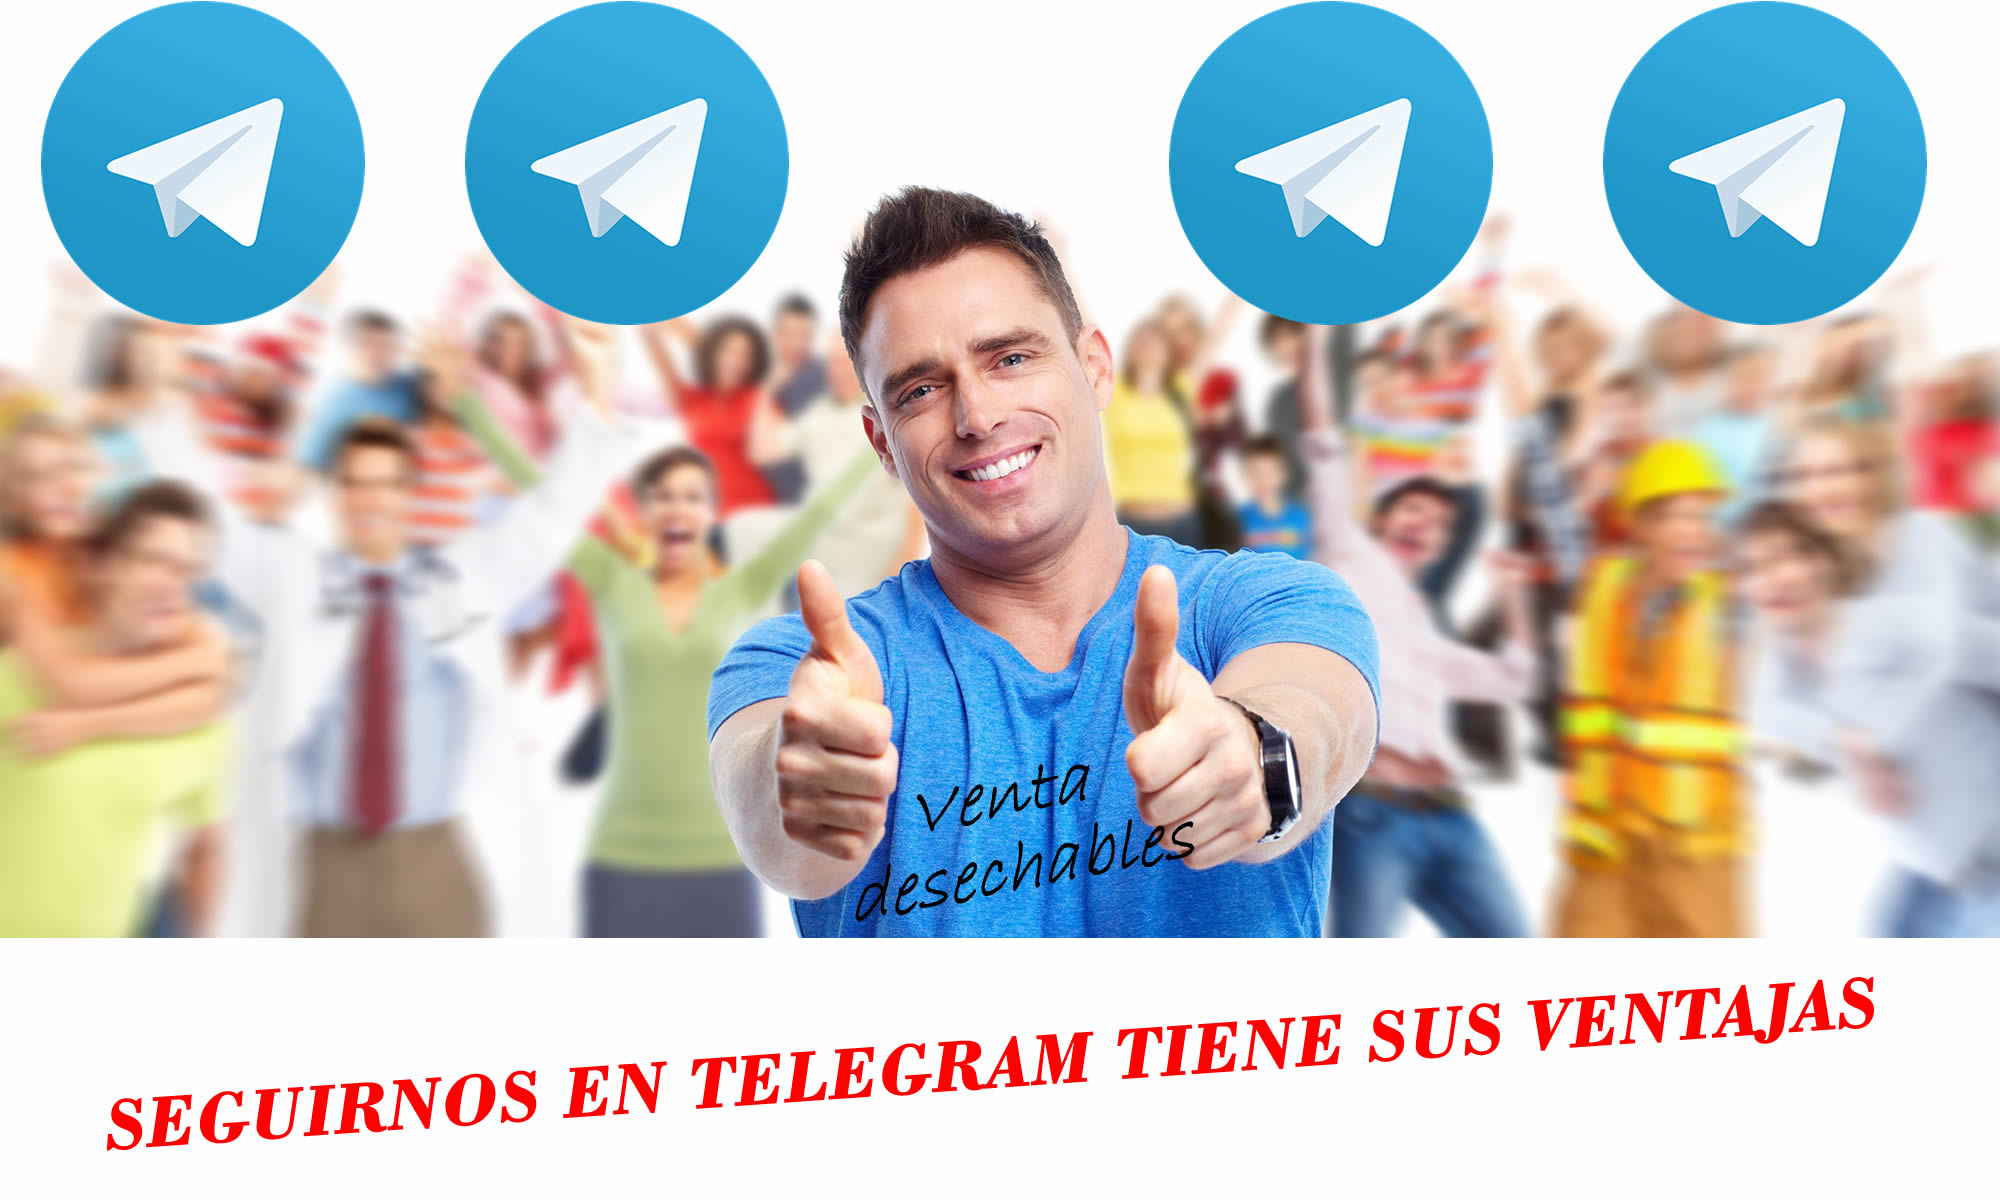 telegram venta desechables